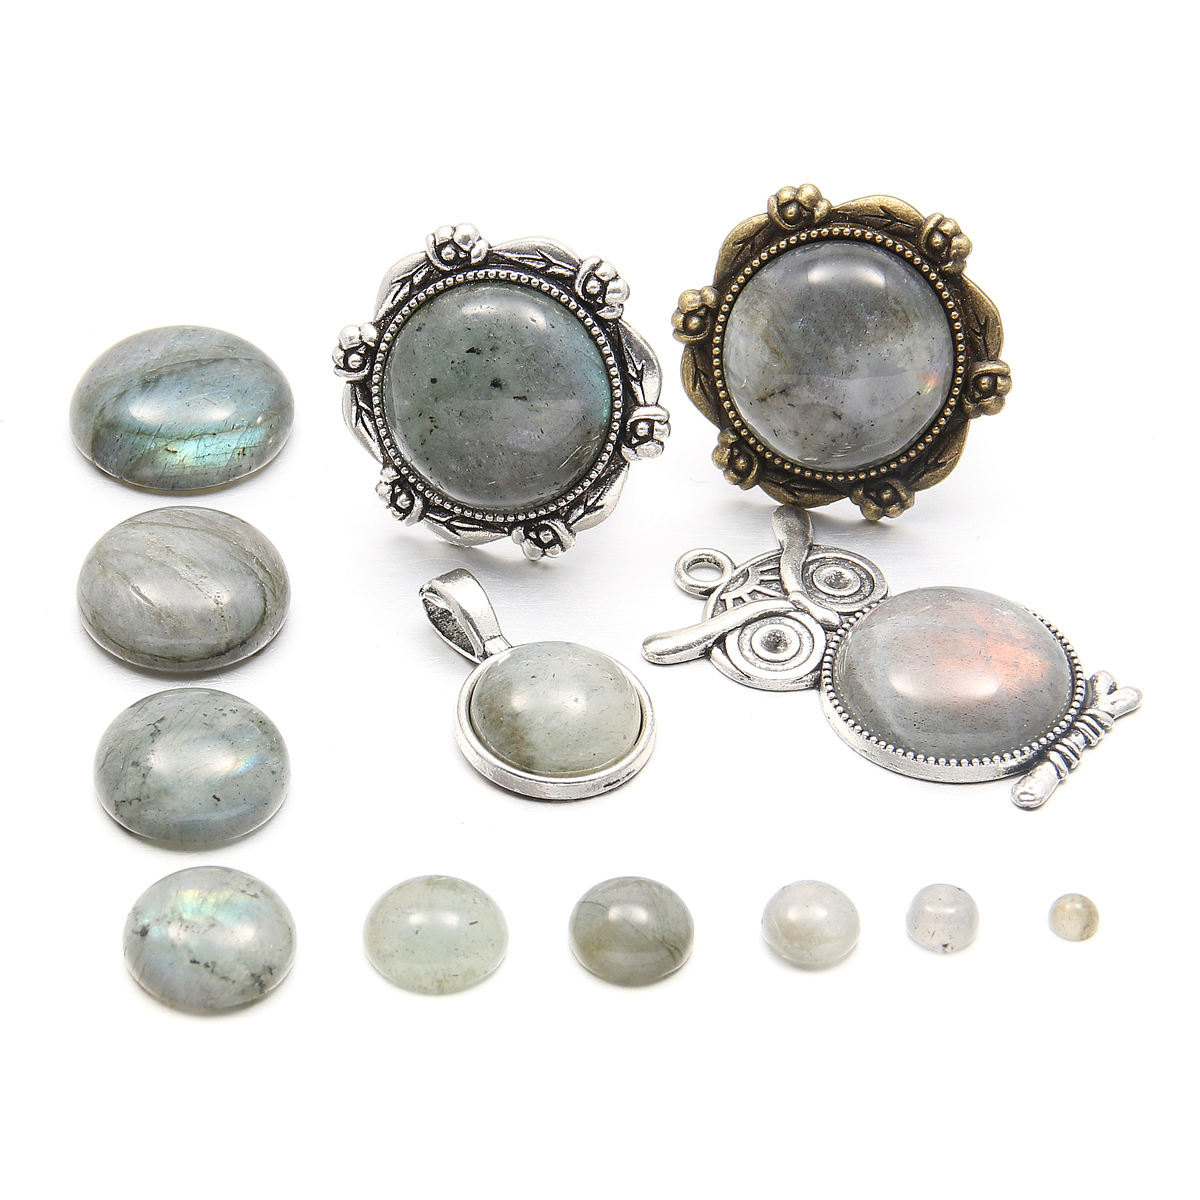 Natural Stones Flash Labradorite Cabochon 10 12 14 16 18 mmRound No Hole Beads for Making Jewelry DIY accessories Loose Beads